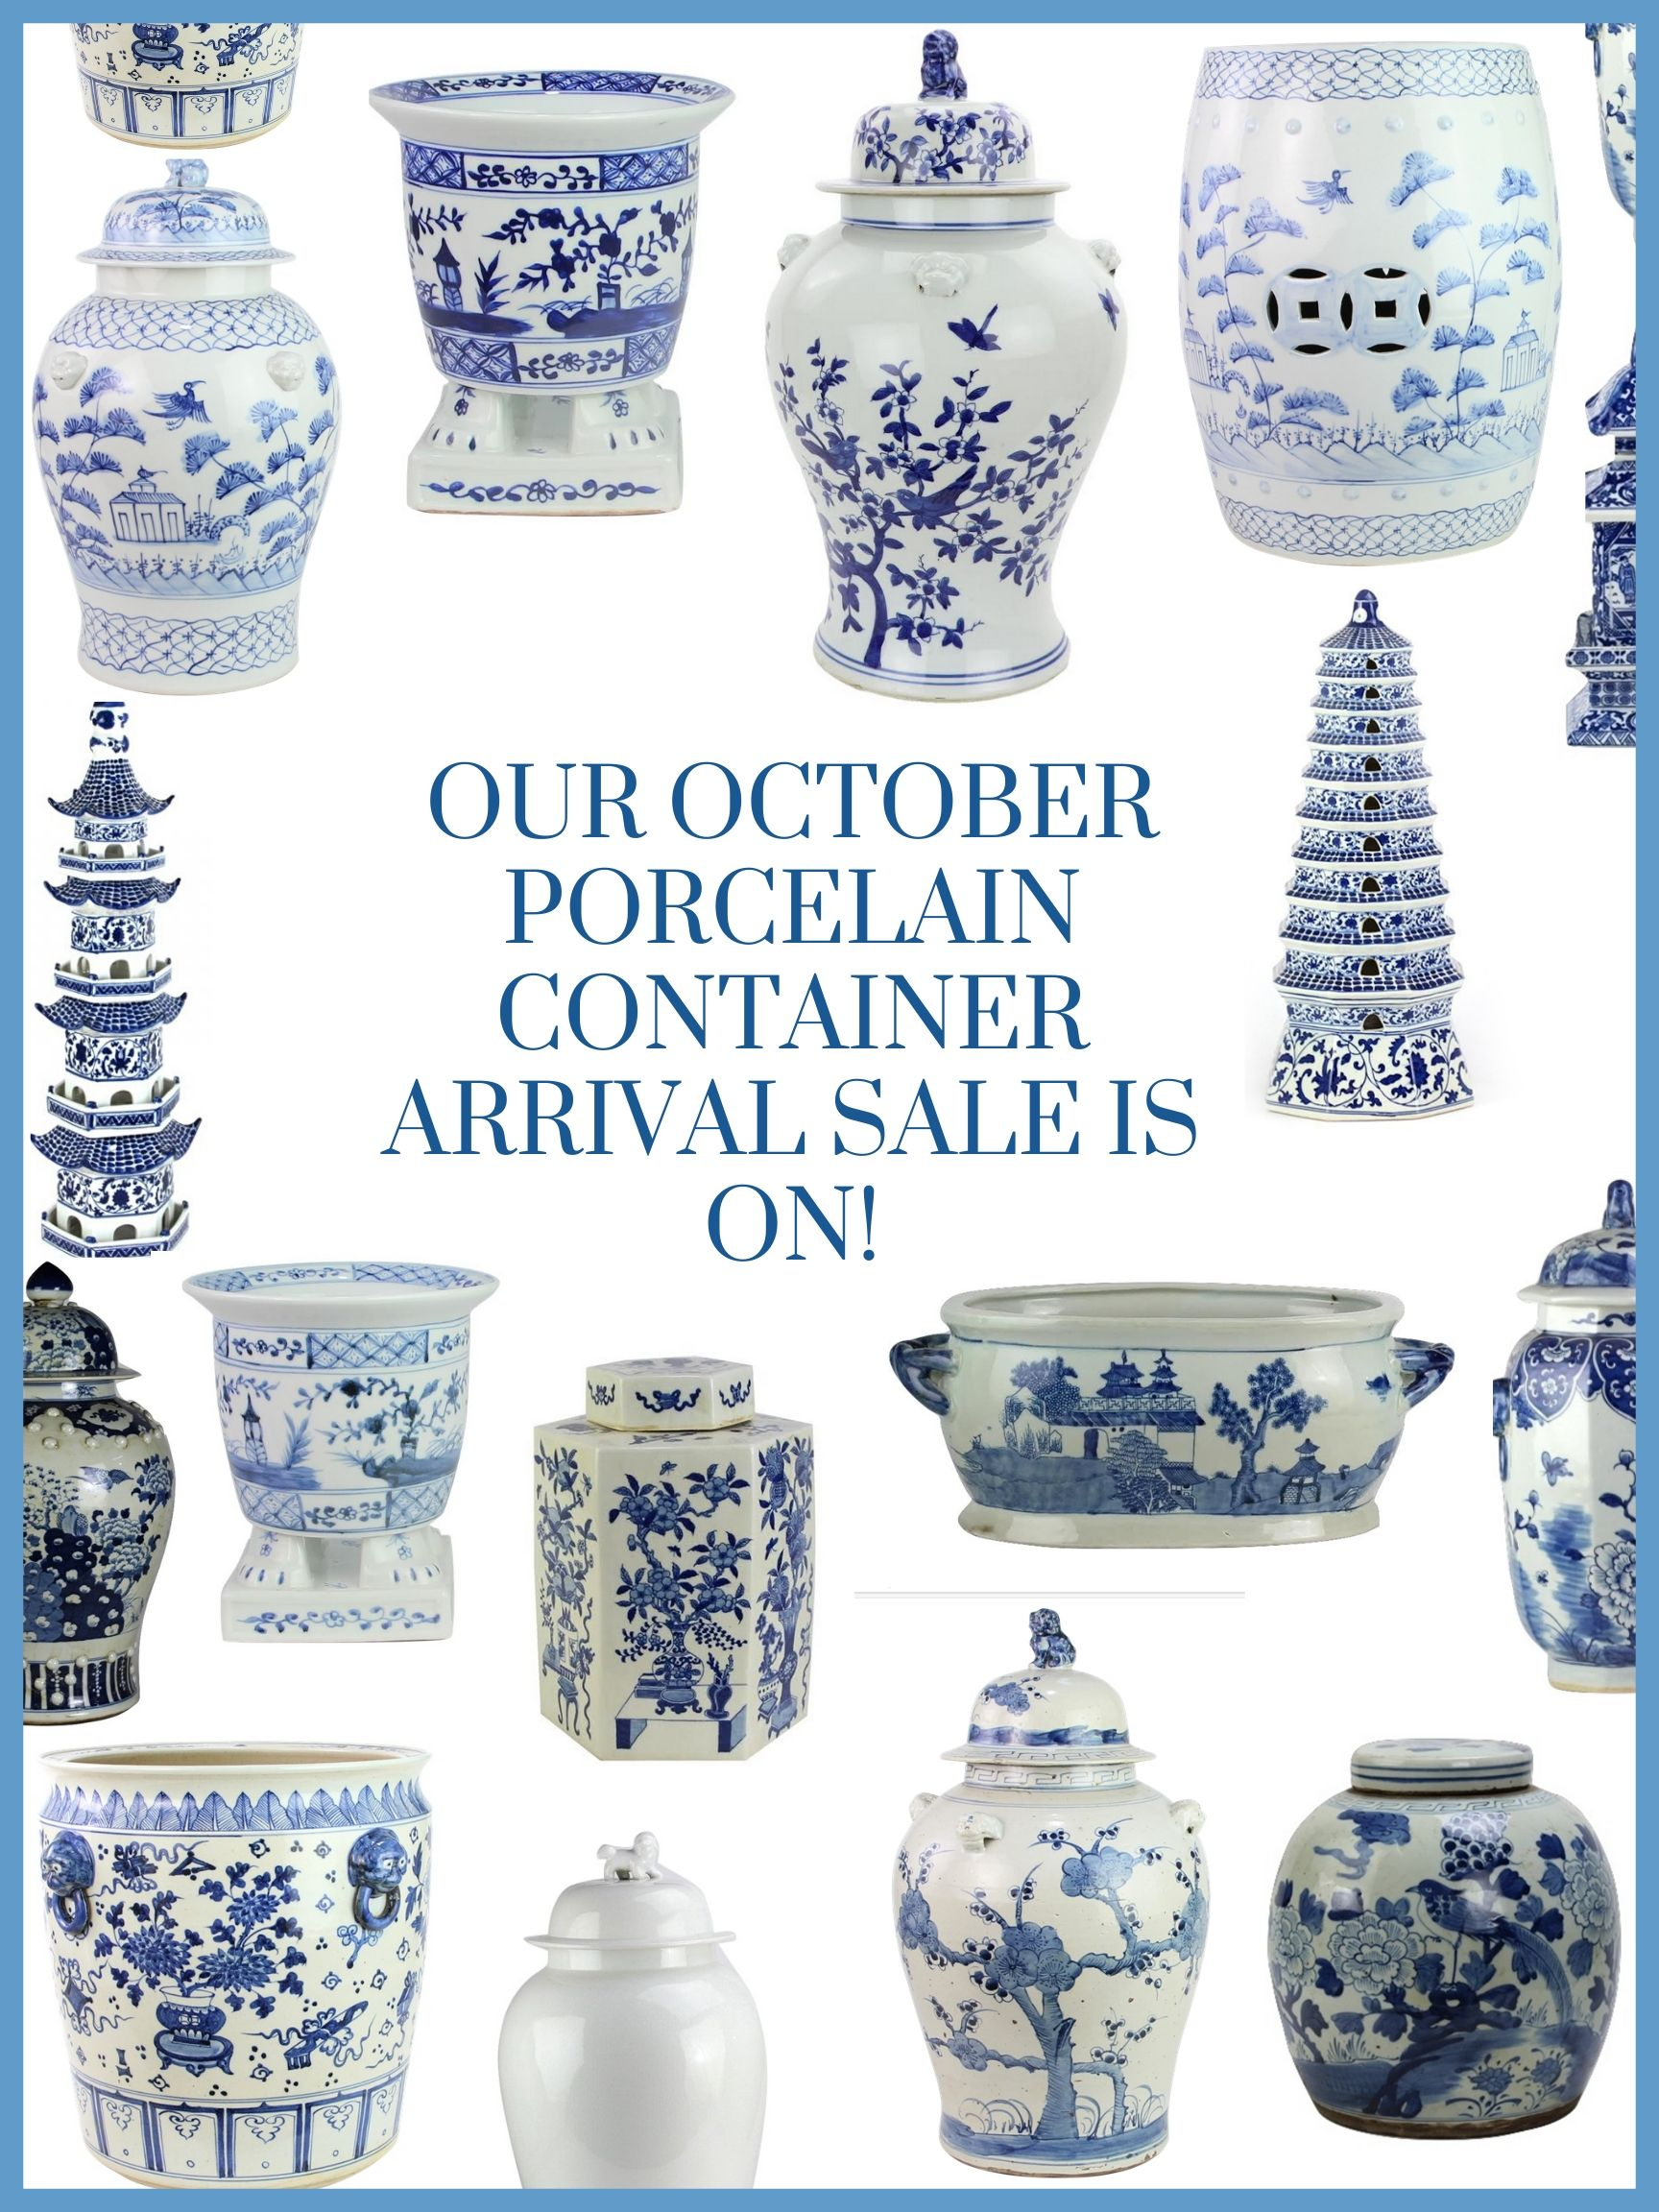 Our Oct. porcelain container arrival sale is on plus a giveaway!